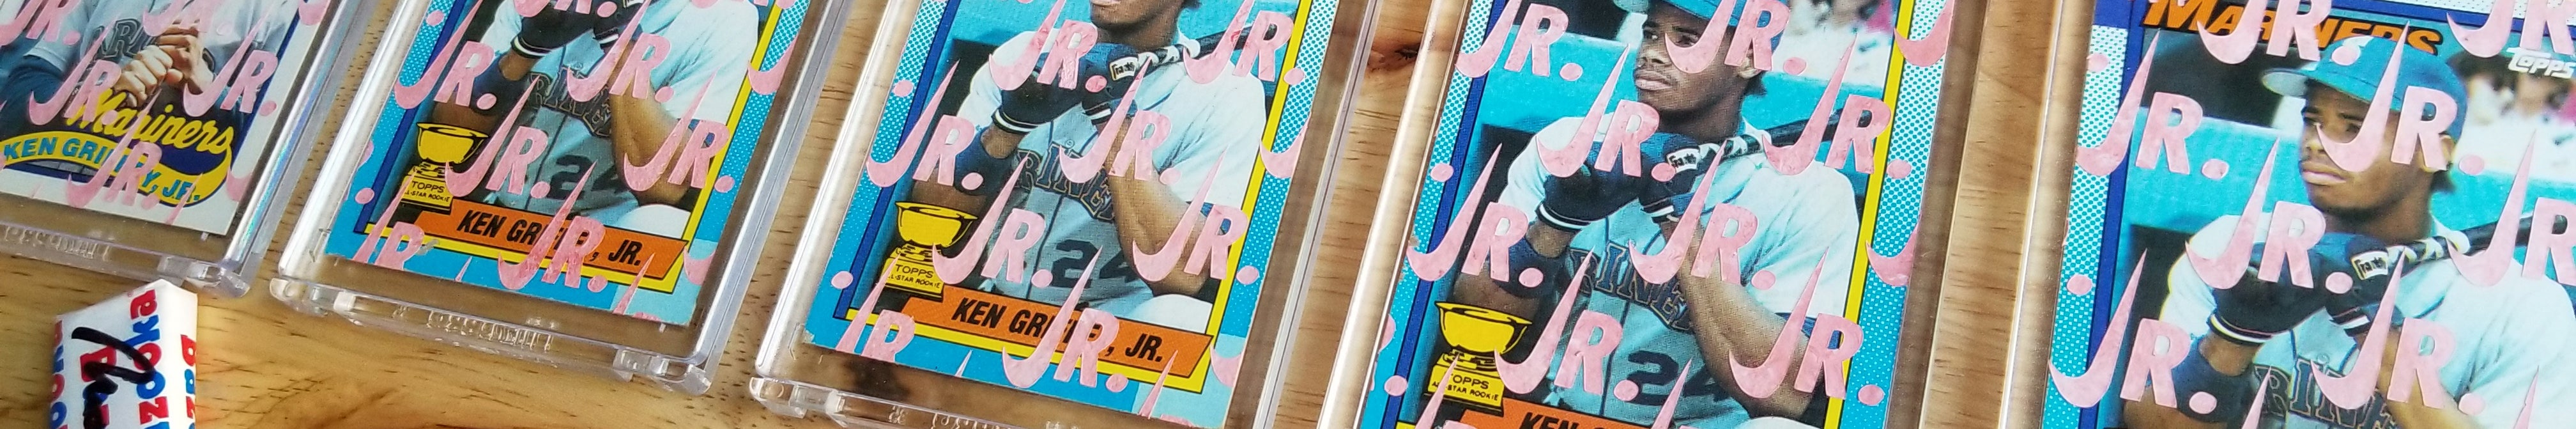 Hand-painted gum sticks on old Topps baseball cards by artist Matthew Lee Rosen